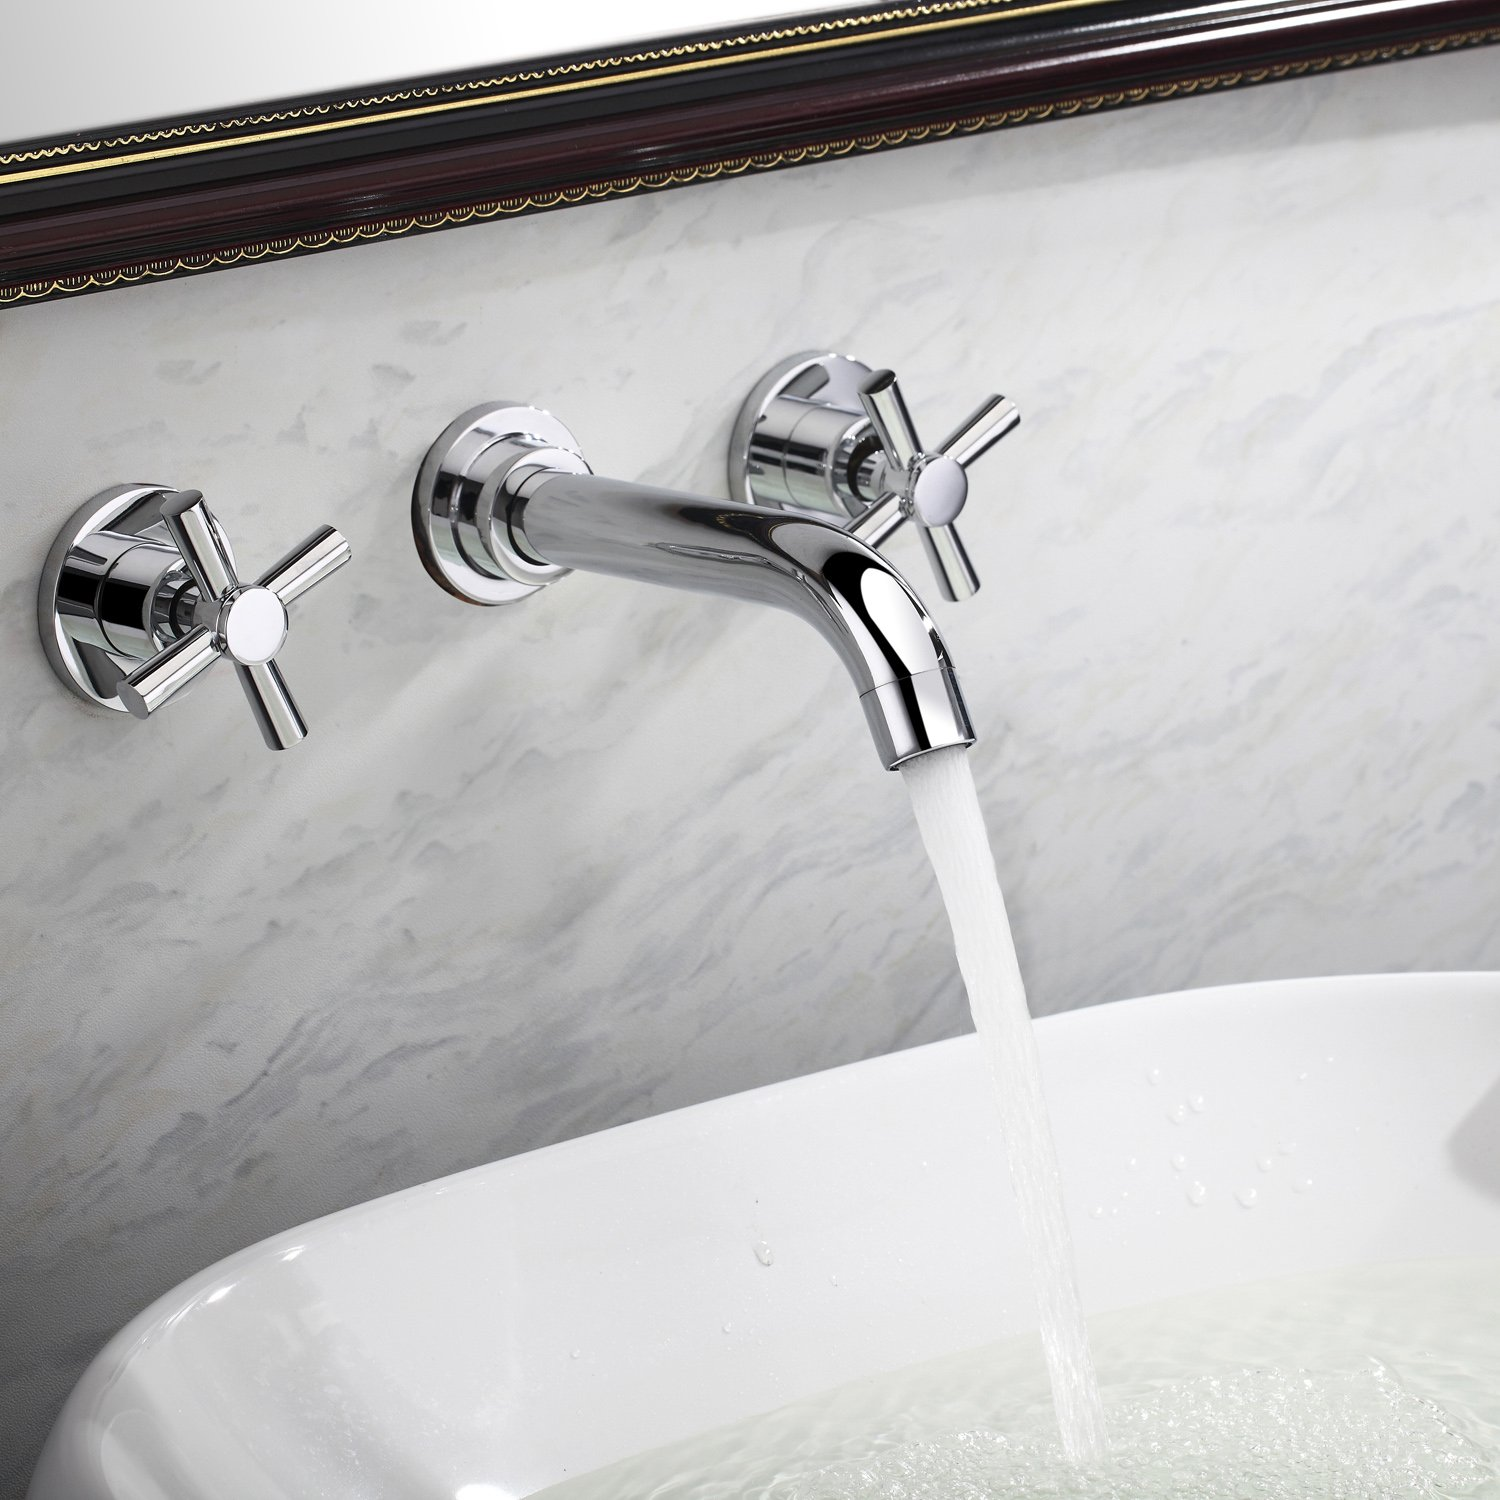 Lightinthebox Contemporary Widespread Bathroom Sink Faucet Wall Mount Two Handles Bathroom Bathtub Mixer Taps Bath Tub Faucets Long Curve Spout Bar Faucets Two Handles Wall Mount Bath Shower Faucets Lavatory Plumbing Fixtures by LightInTheBox